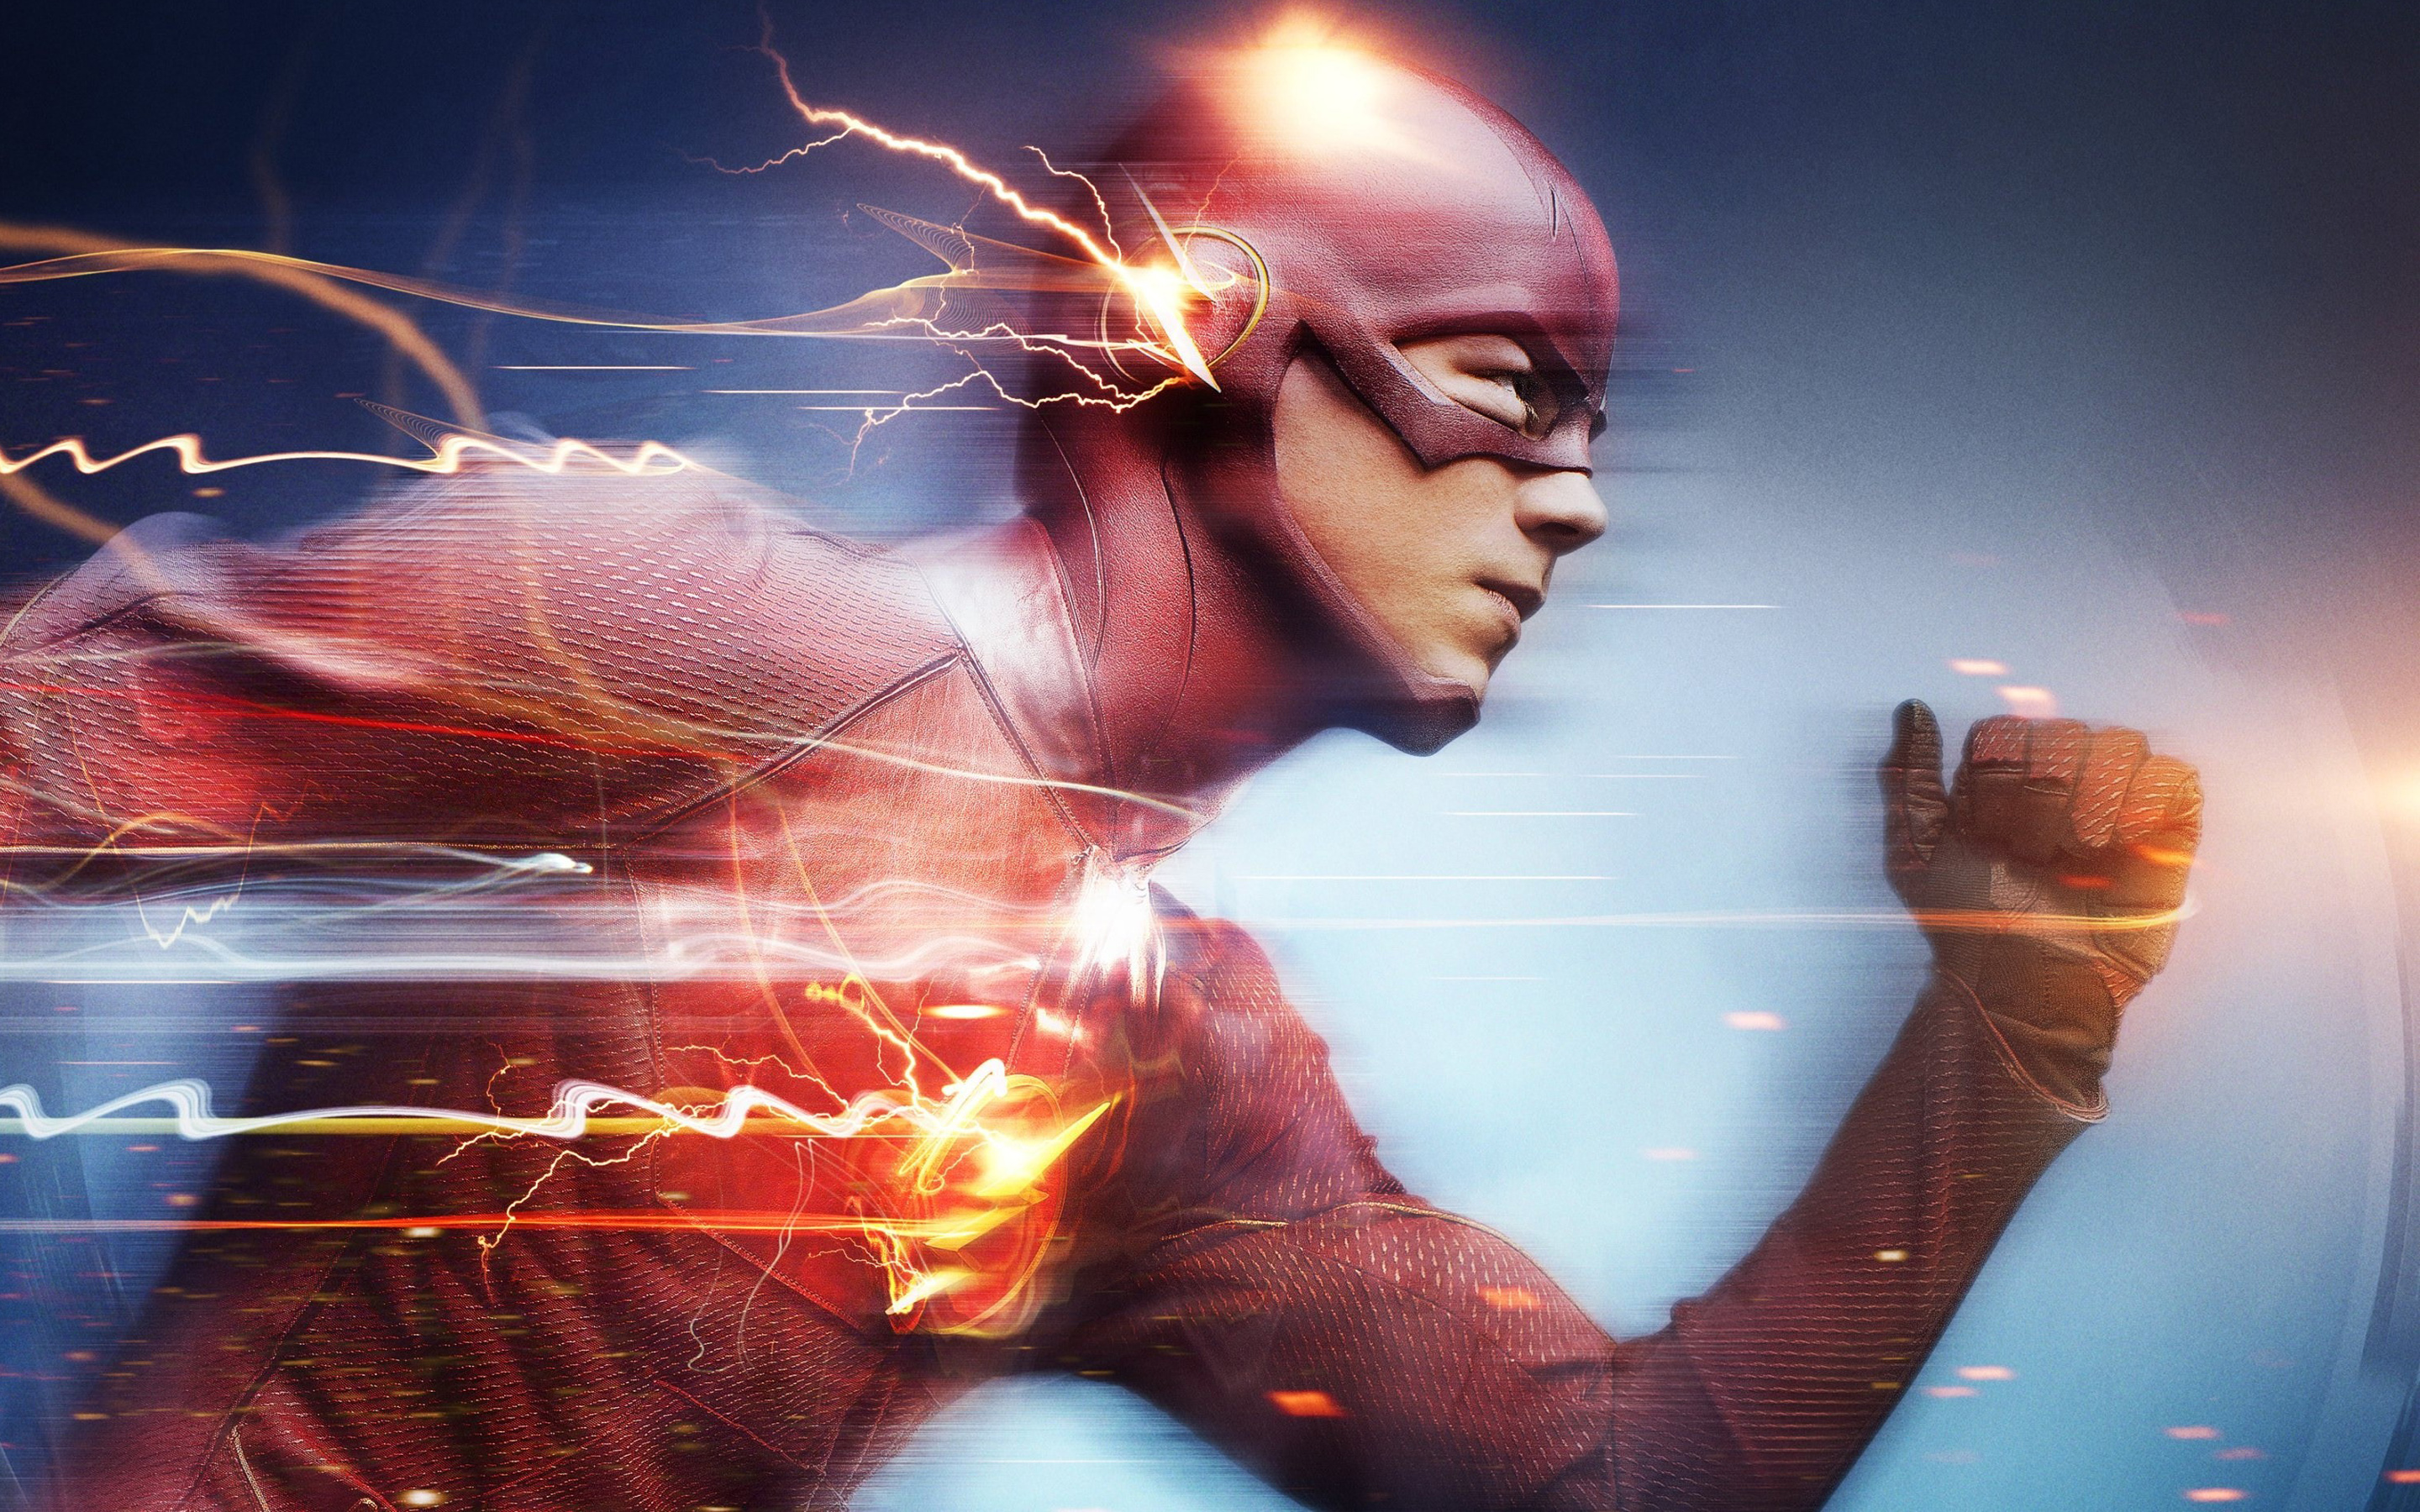 HD Wallpapers Barry Allen The Flash